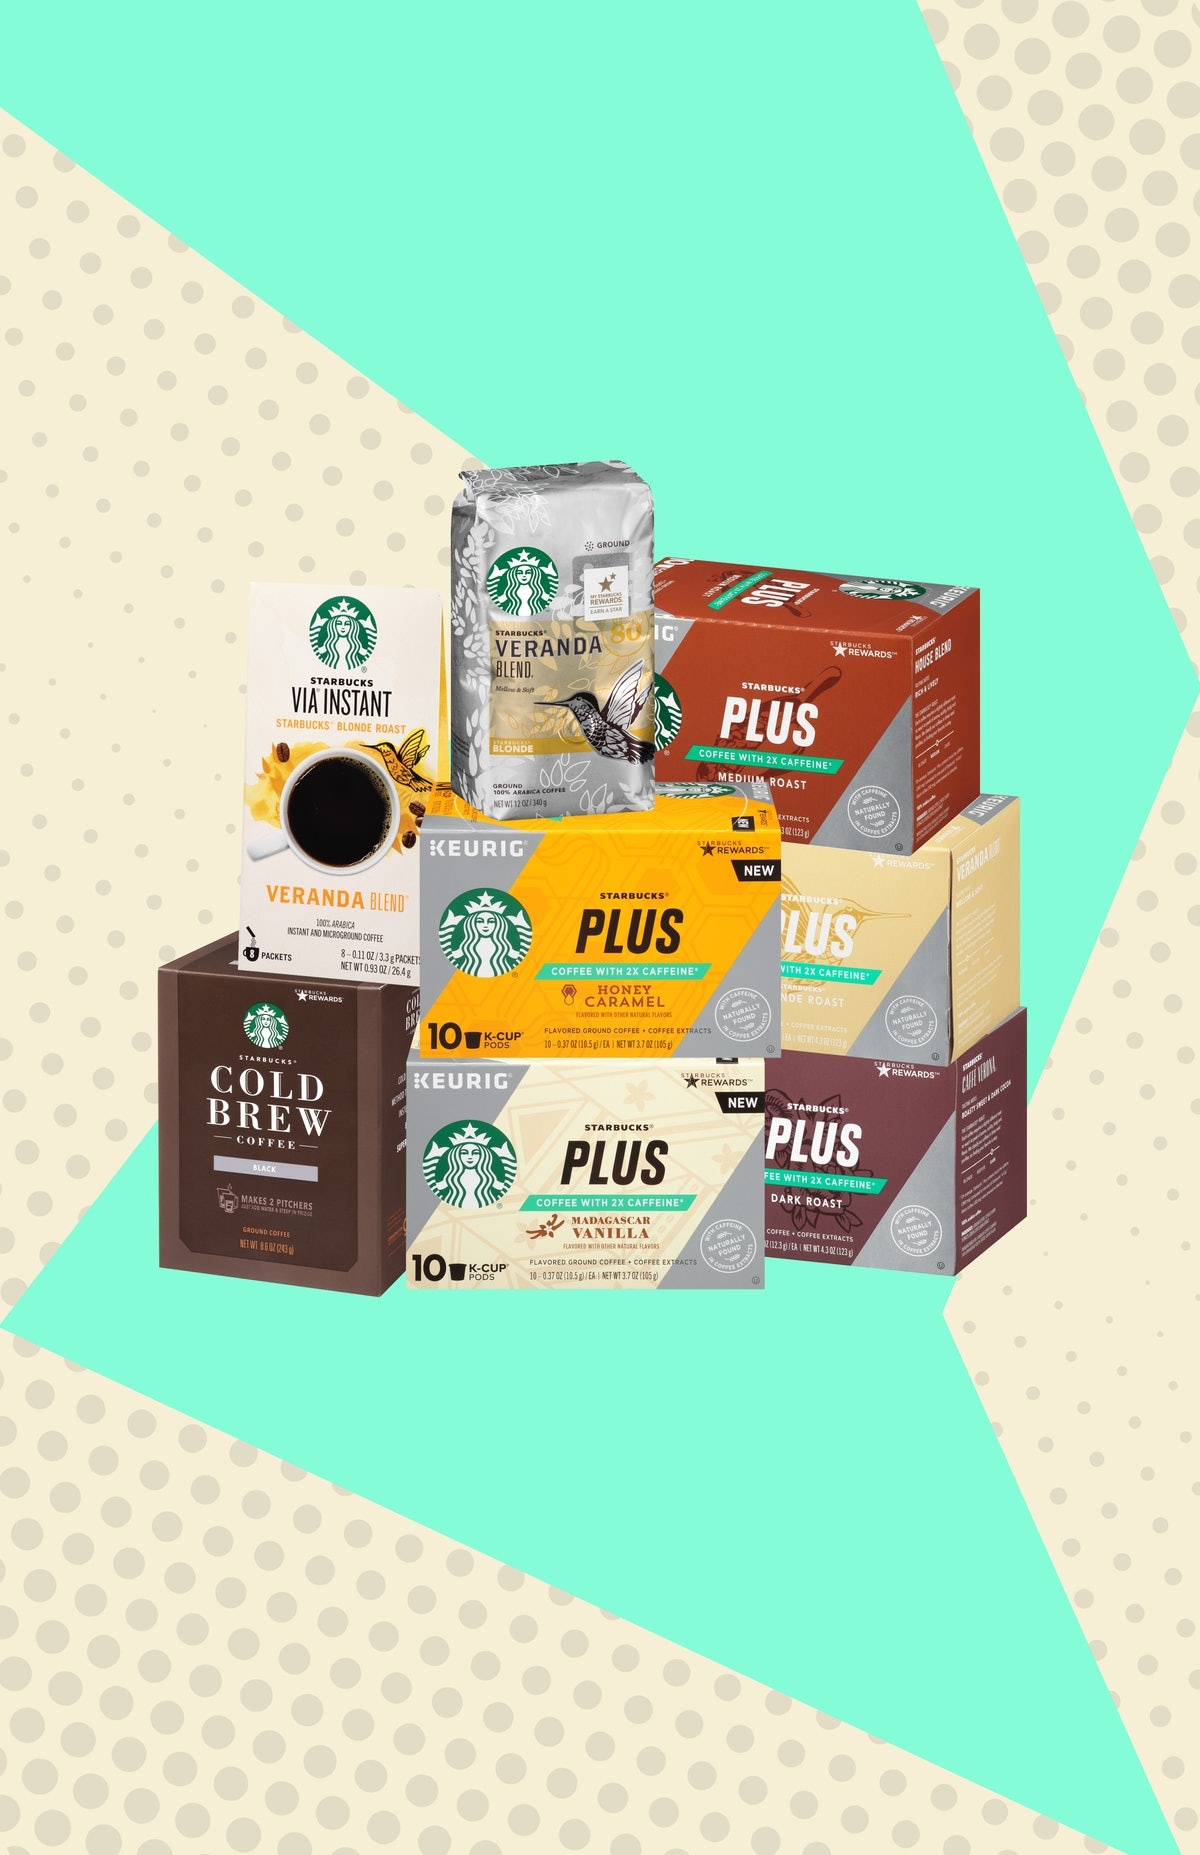 These At-Home Starbucks Drinks With The Most Caffeine Will Keep You Going This Spring